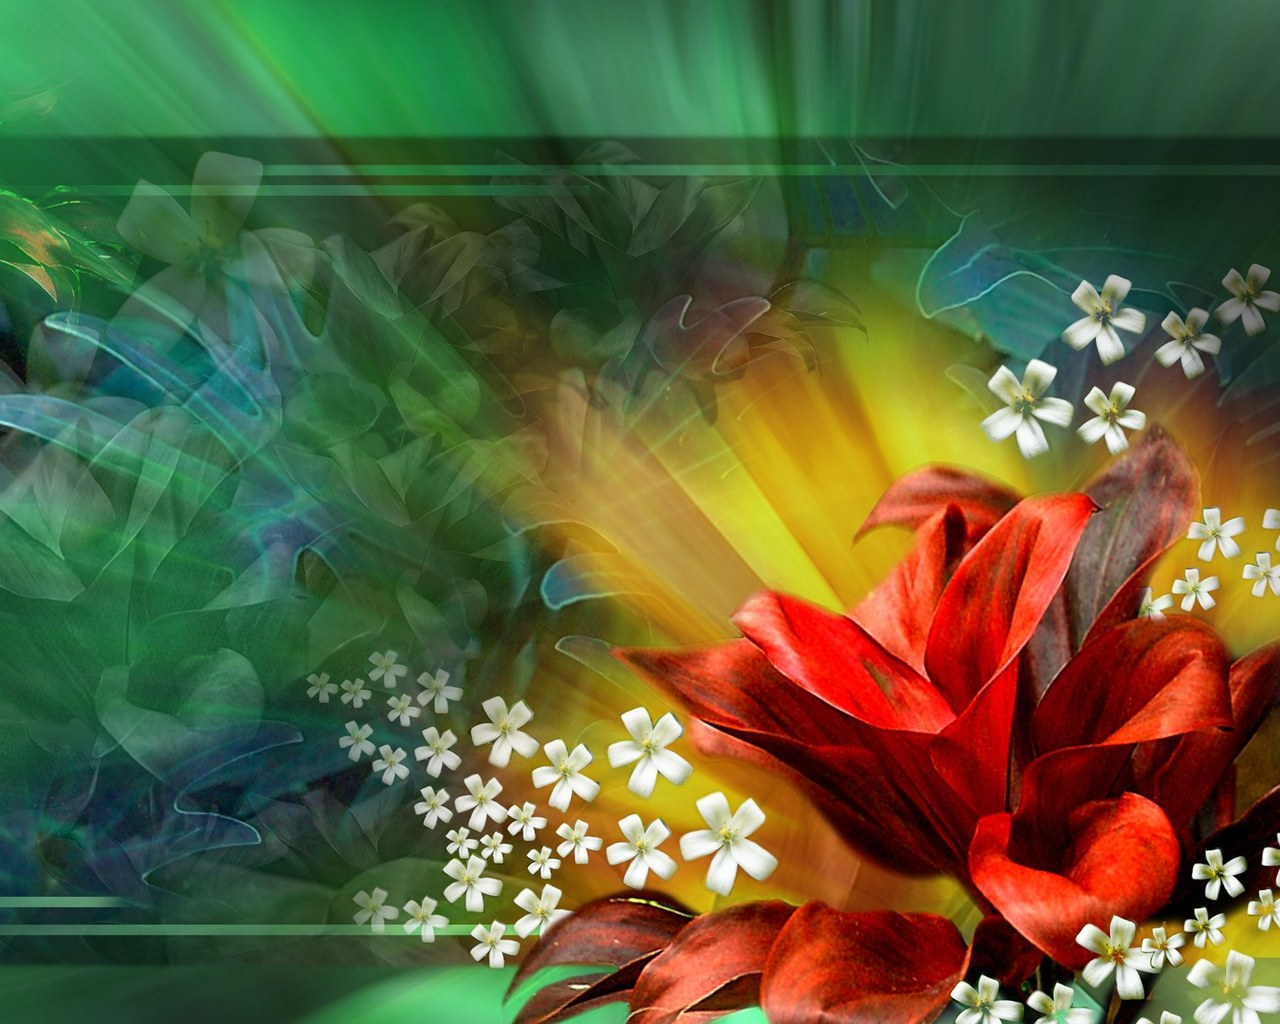 Windows 7 3D Wallpaper Free Download 010